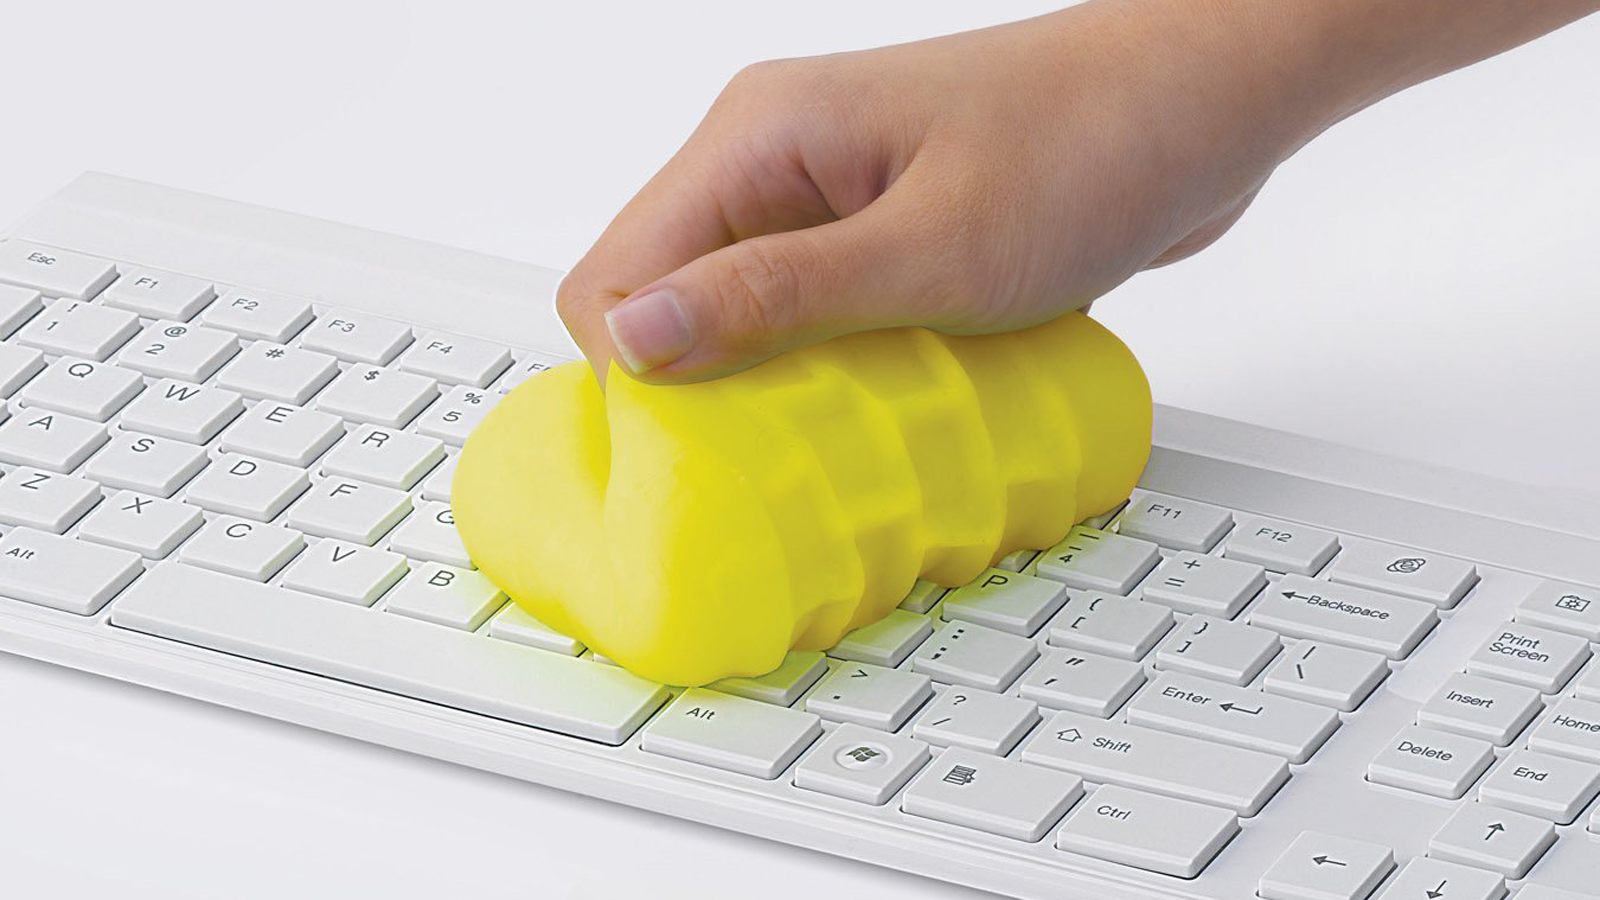 How to Clean Your PC Keyboard